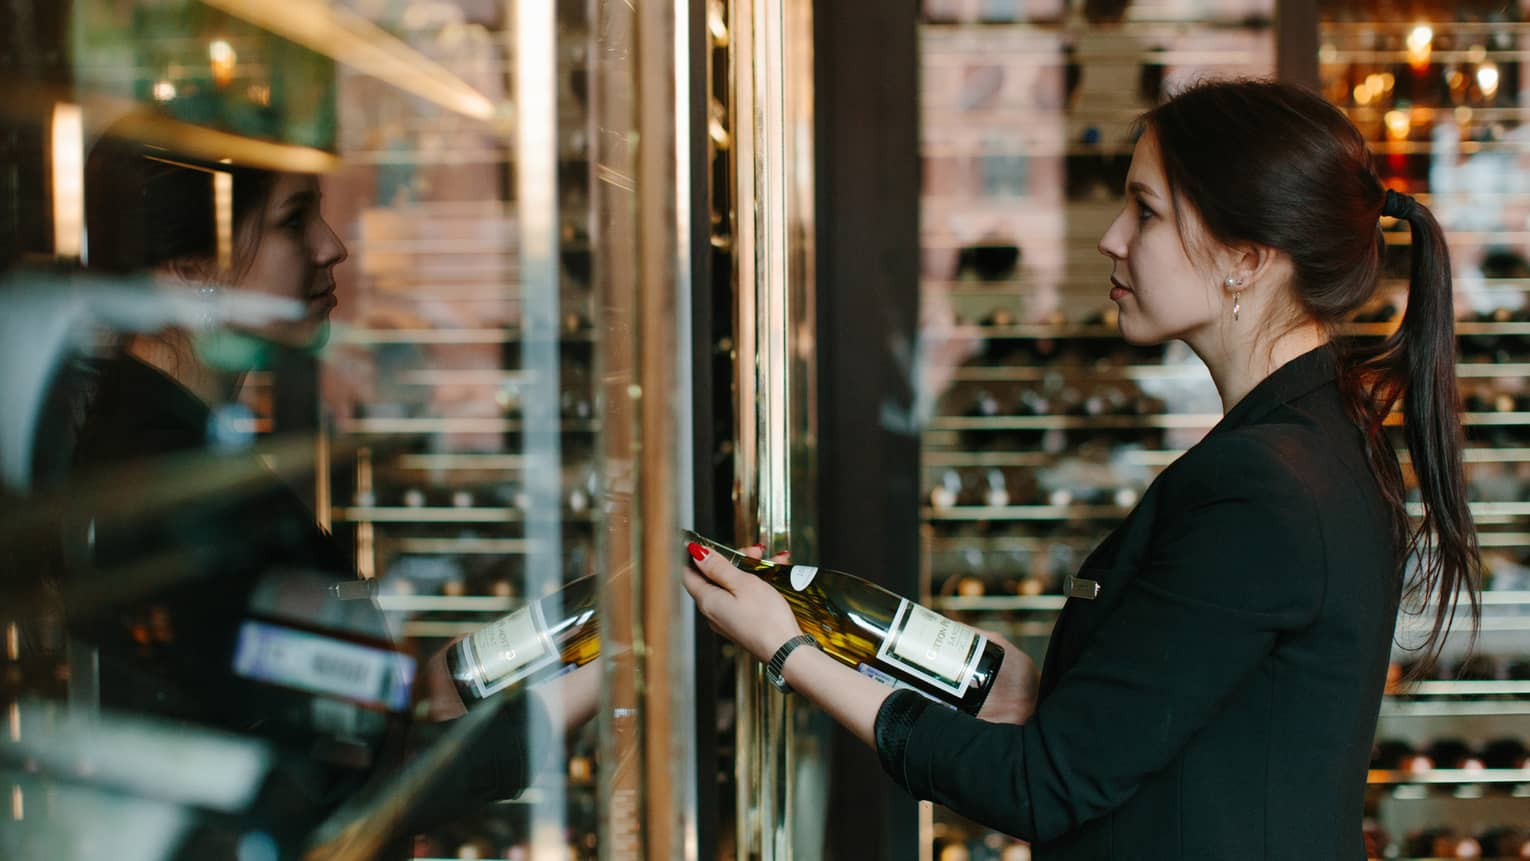 Wine sommelier examines bottle at glass cellar